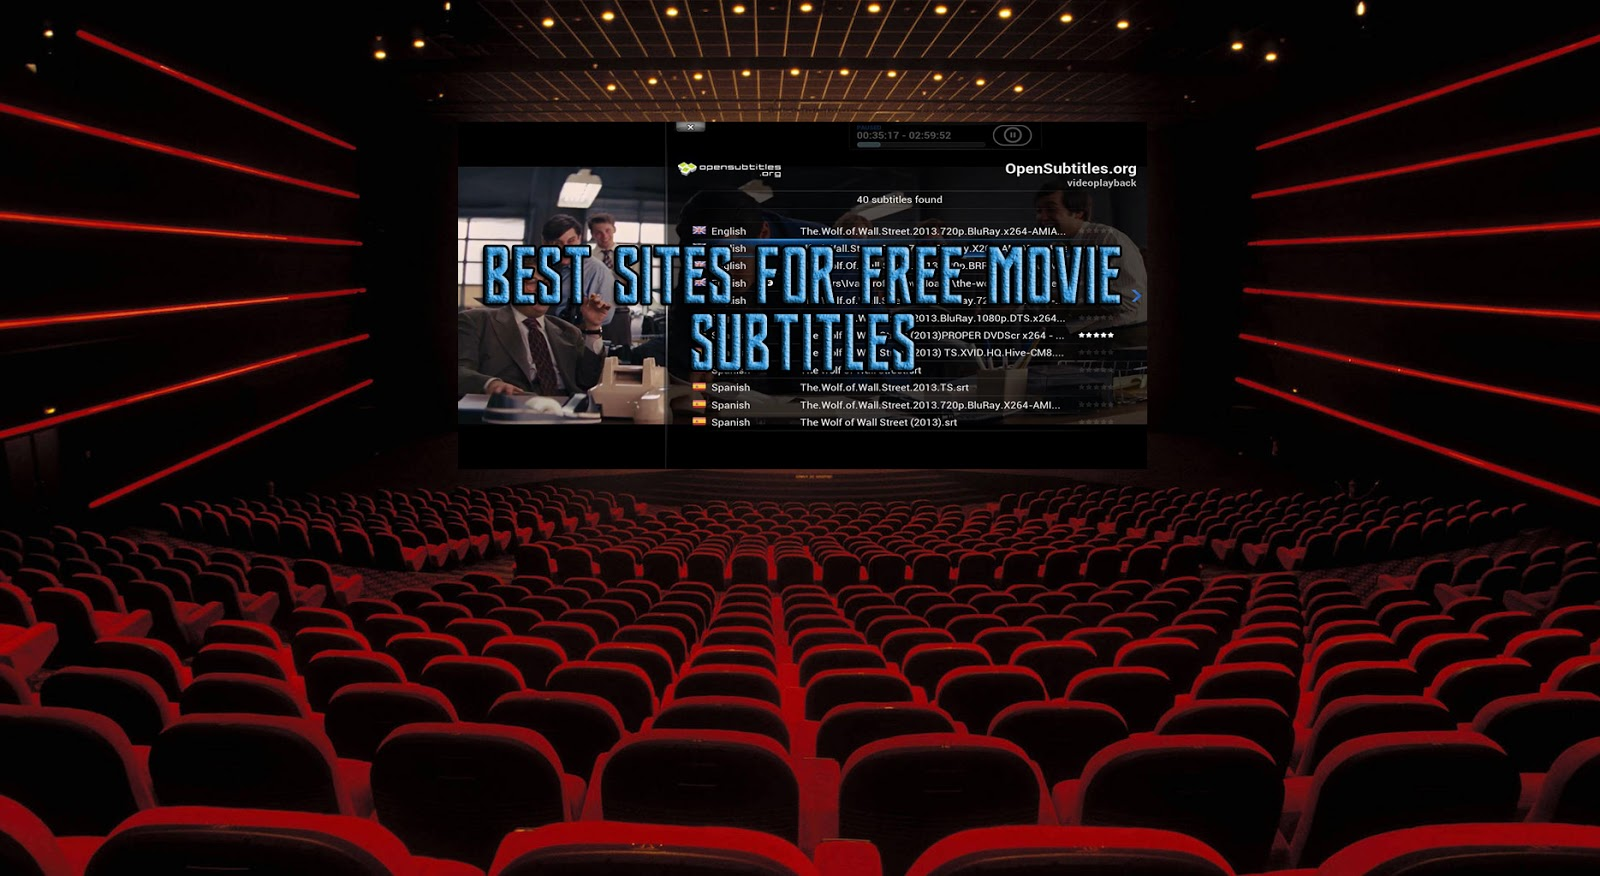 free movies with subtitles